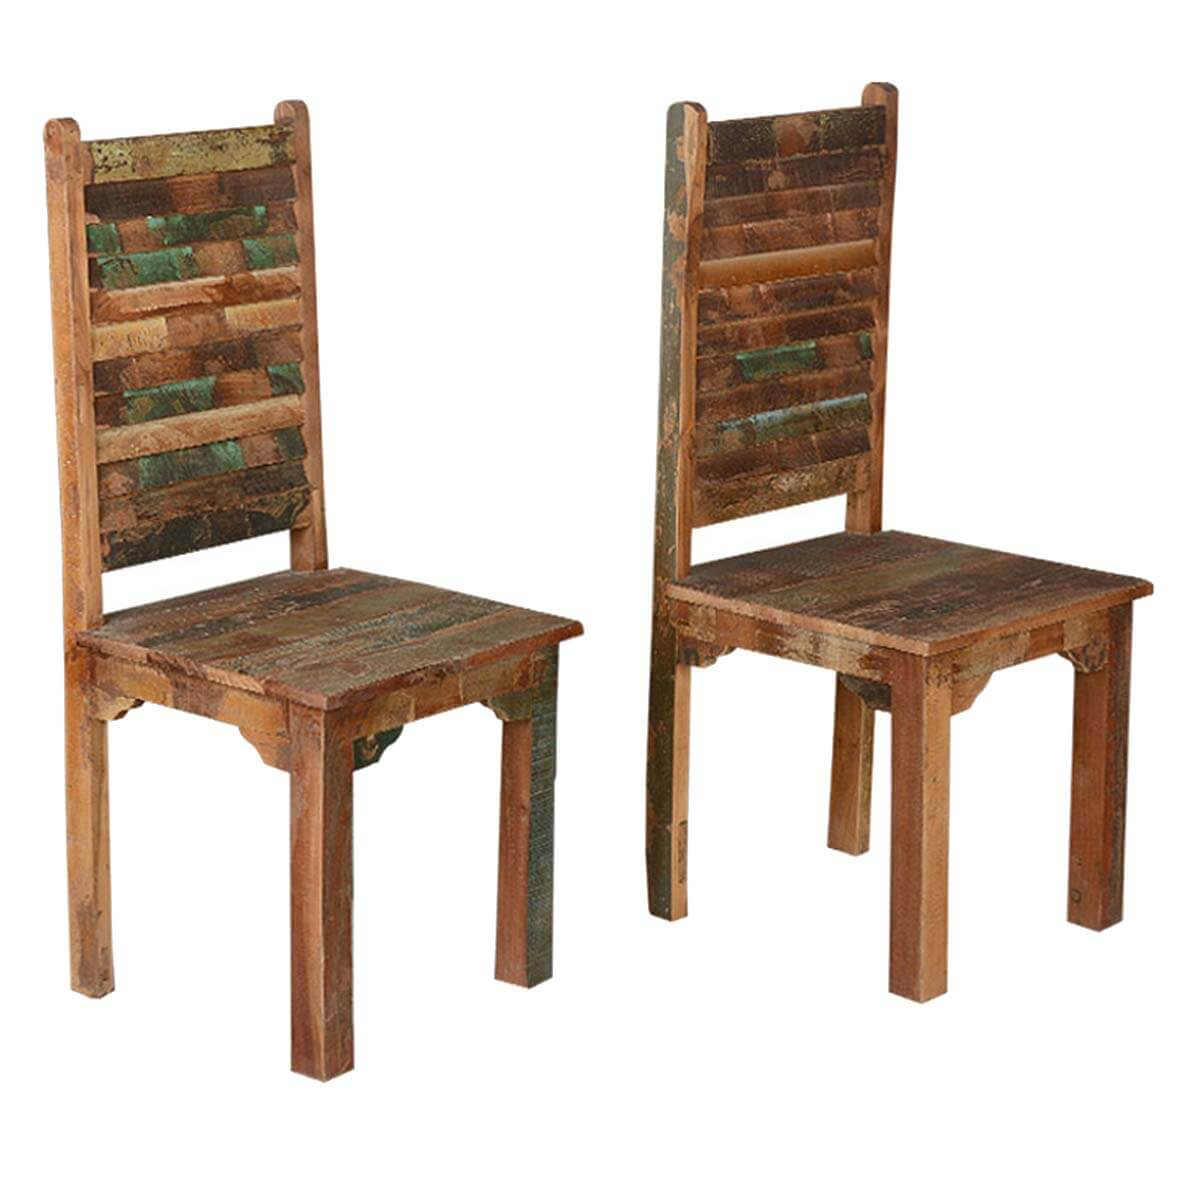 Reclaimed Wood Dining Chairs ~ Rustic distressed reclaimed wood multi color dining chairs